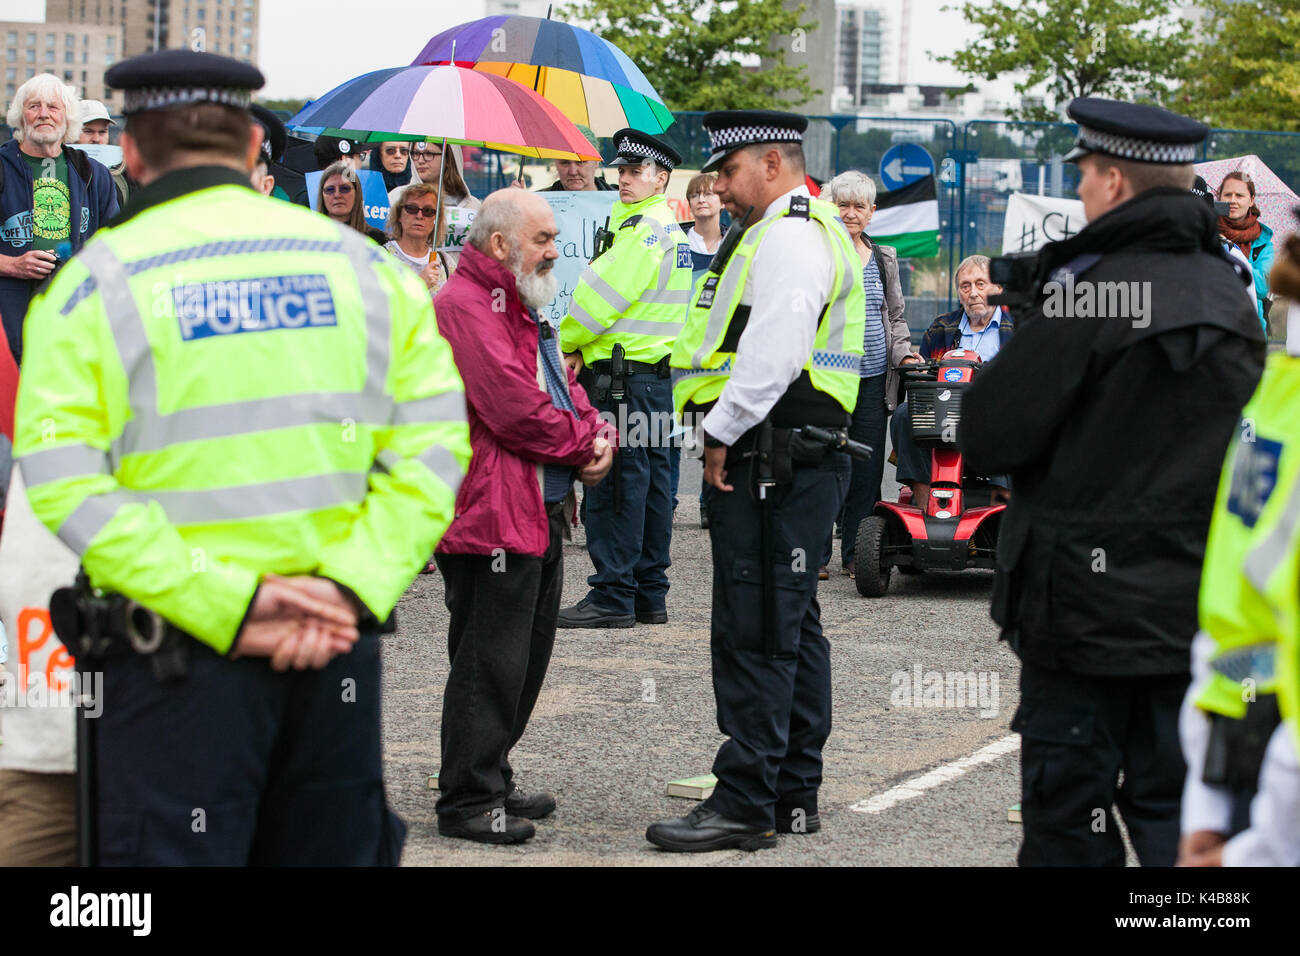 London, UK. 5th Sep, 2017. Quakers block the access road to the ExCel Centre to prevent military equipment arriving Stock Photo